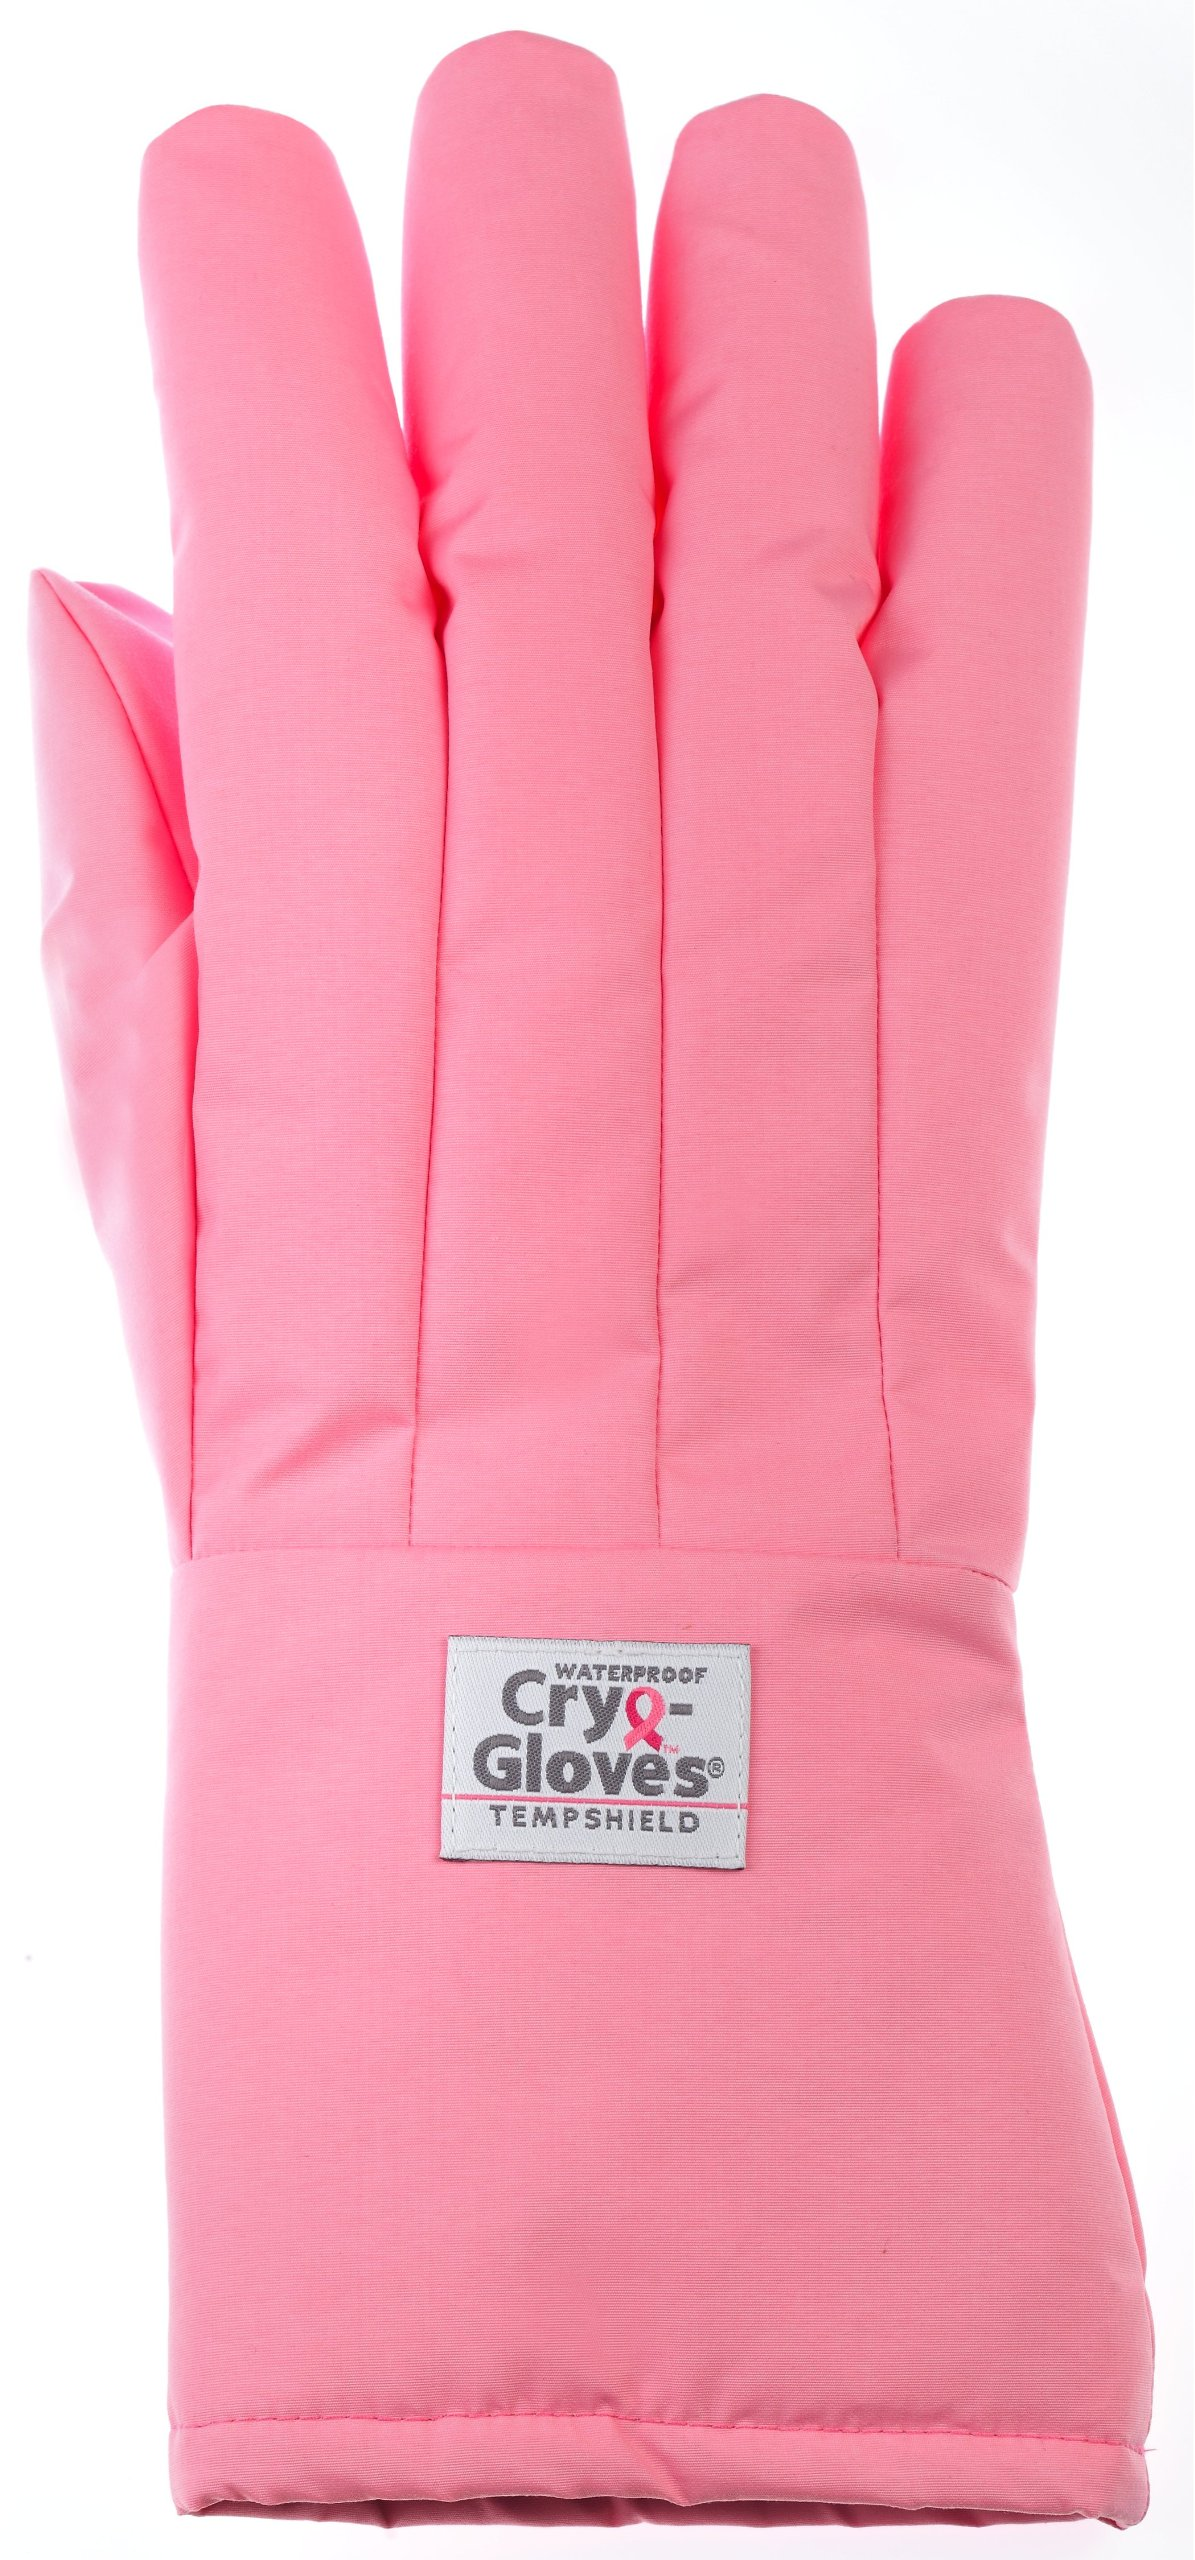 Waterproof Cryo-Gloves P-MASWP Cryogenic Gloves, Mid-Arm, Small, Pink